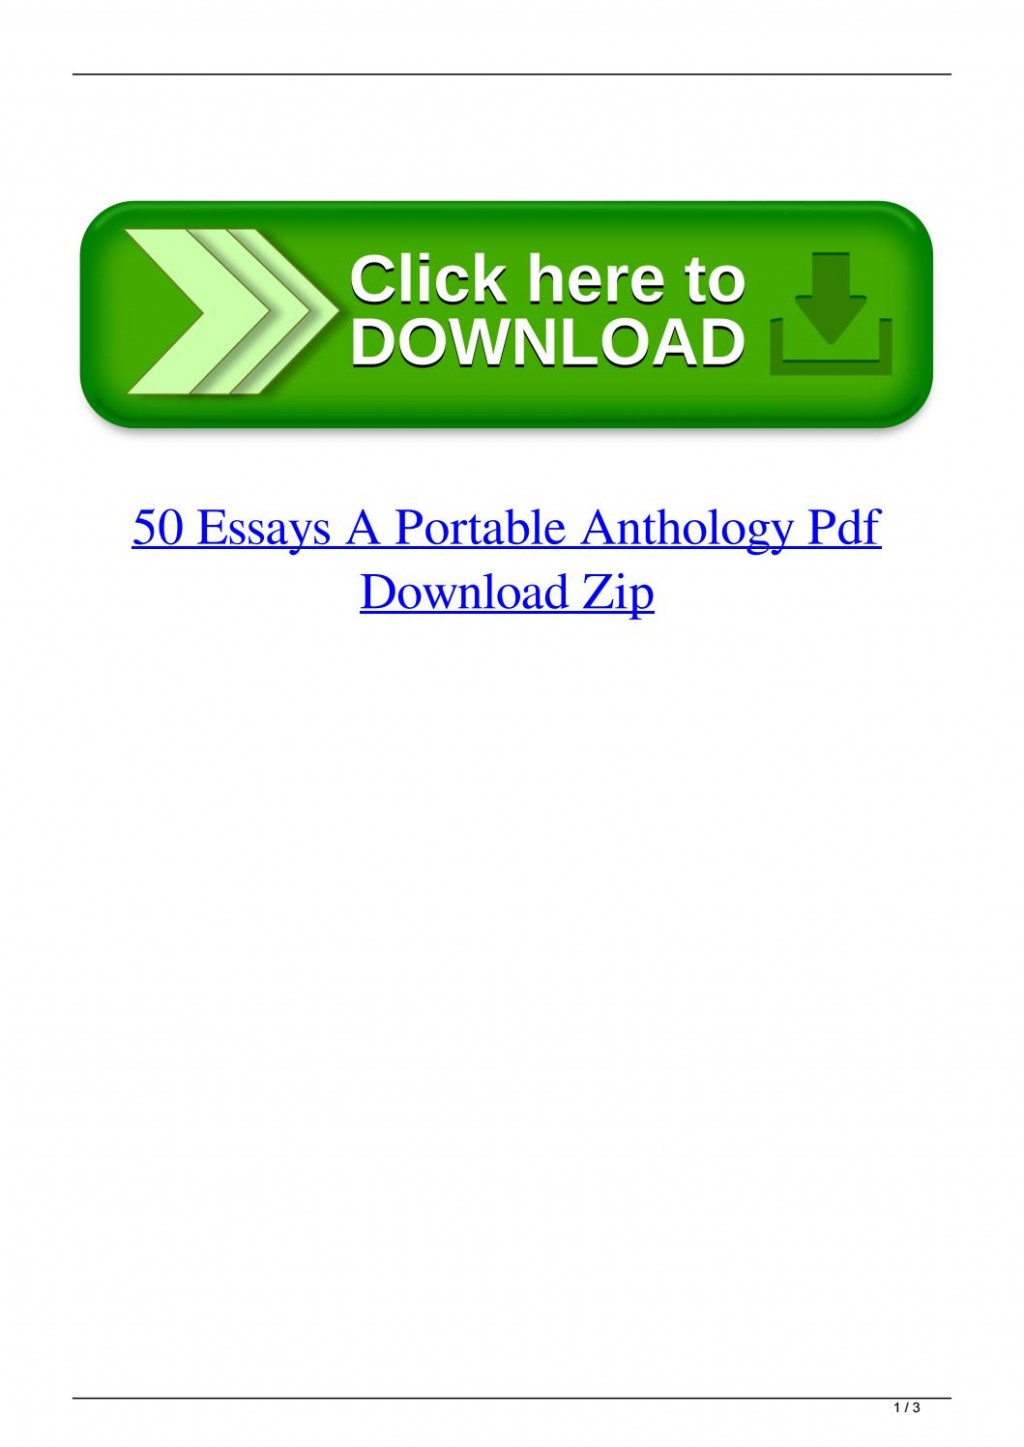 016 Essay Example Page 1 Essays Portable Anthology 4th Edition Awful 50 A Pdf Free Large